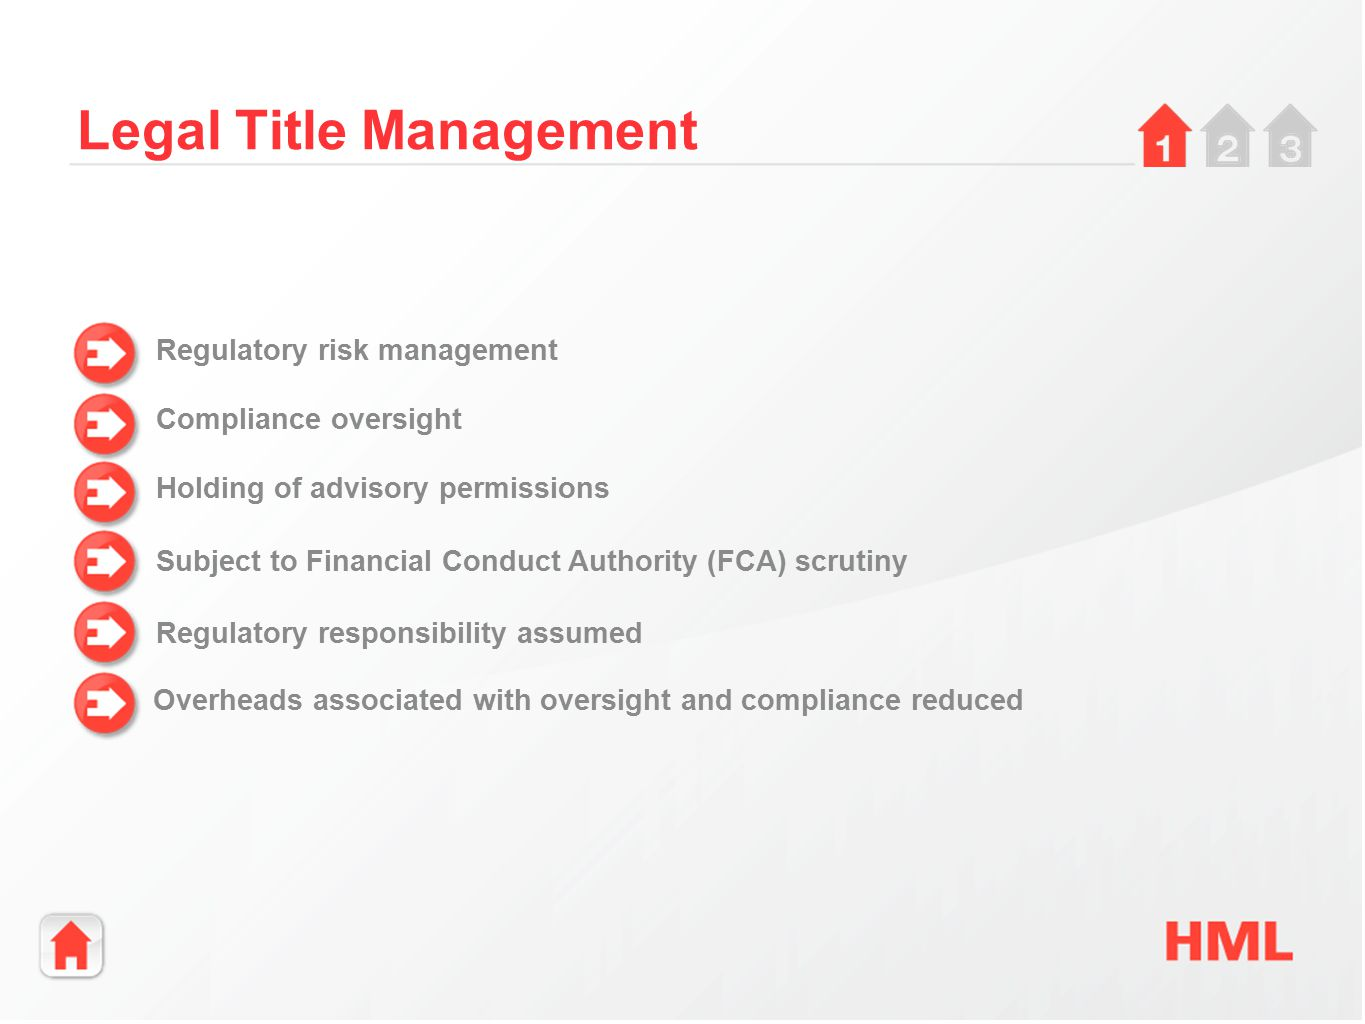 Legal Title Management Regulatory risk management Compliance oversight Holding of advisory permissions Subject to Financial Conduct Authority (FCA) scrutiny Regulatory responsibility assumed Overheads associated with oversight and compliance reduced